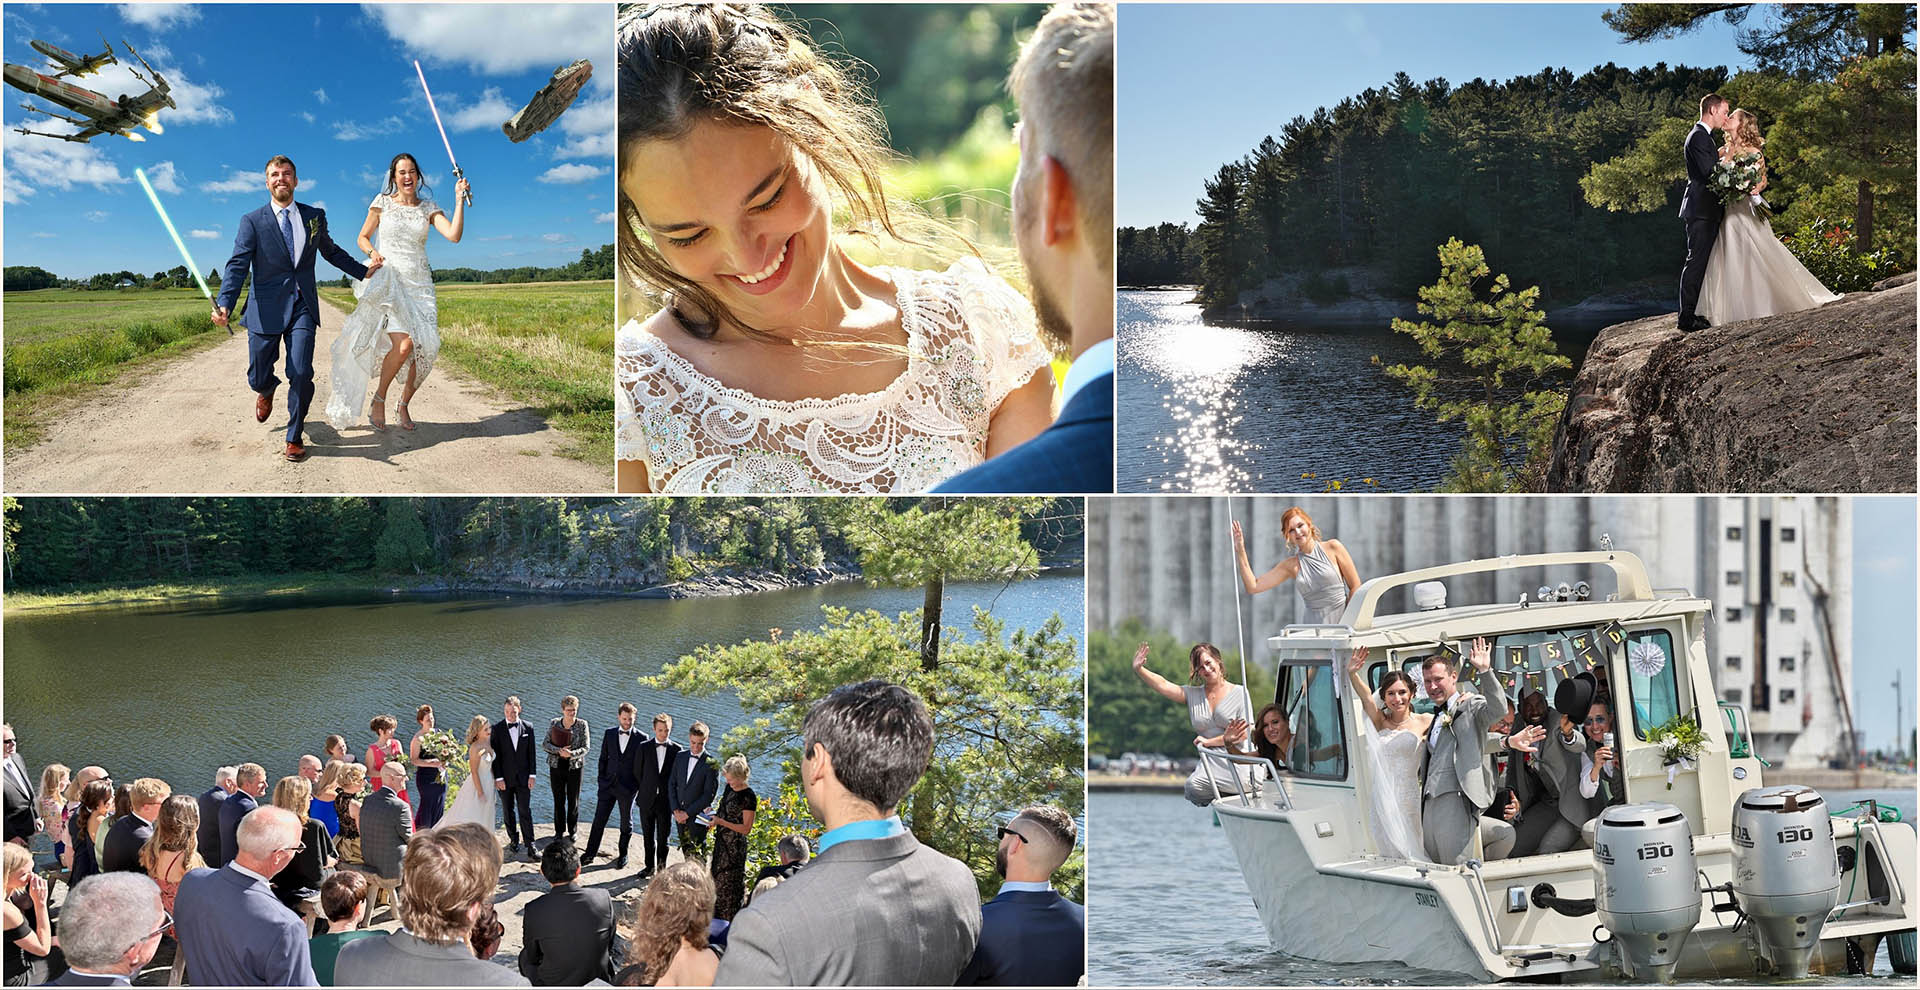 muskoka wedding barrie wedding collingwood wedding toronto wedding wasaga wedding orillia wedding kawartha wedding kingston wedding owen sound wedding